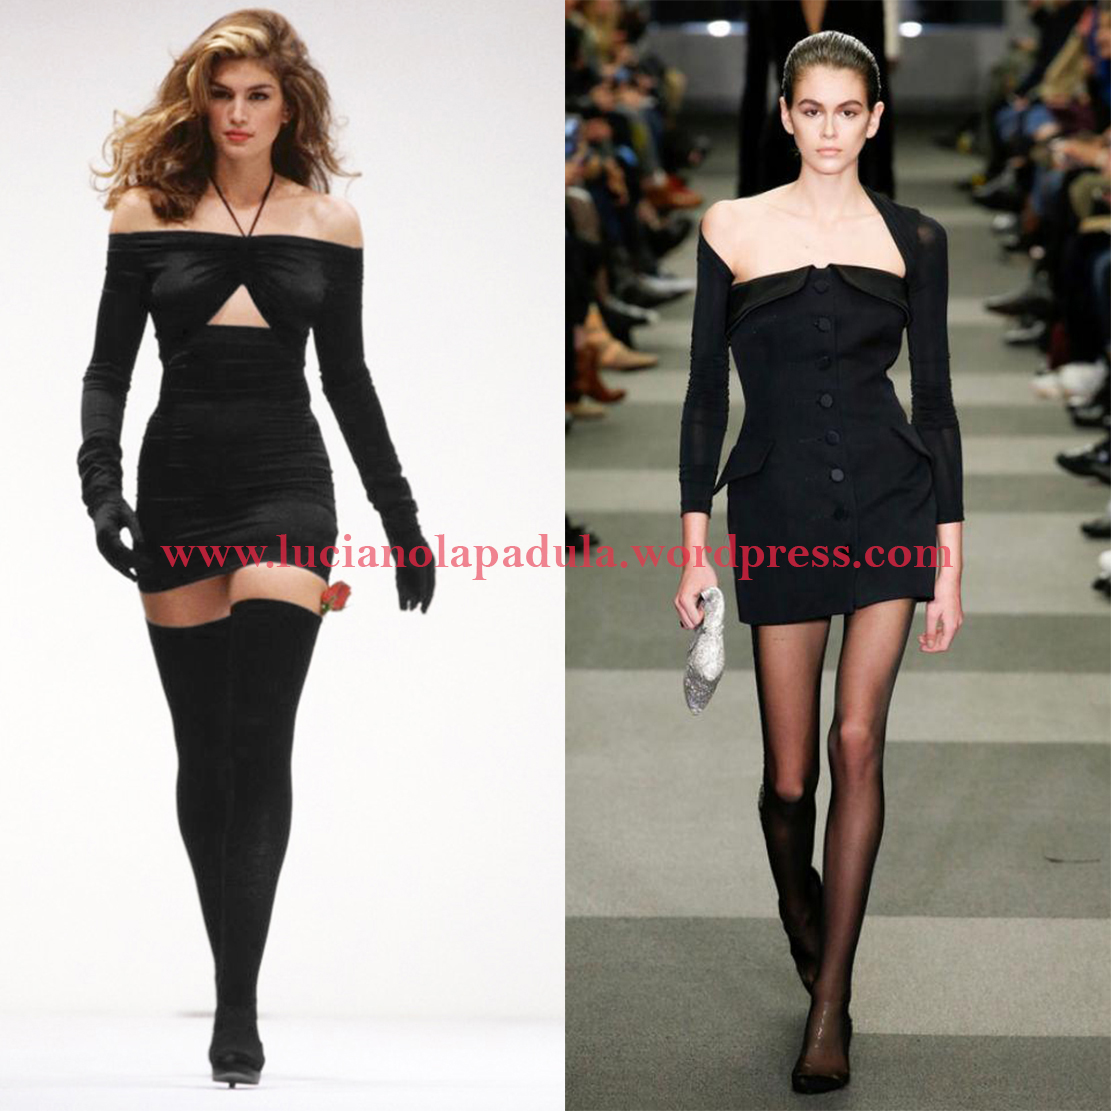 cindy crawford 90s daughter model kaia gerber comparison anorexic blog luciano lapadula blogger fashion expert history versace black